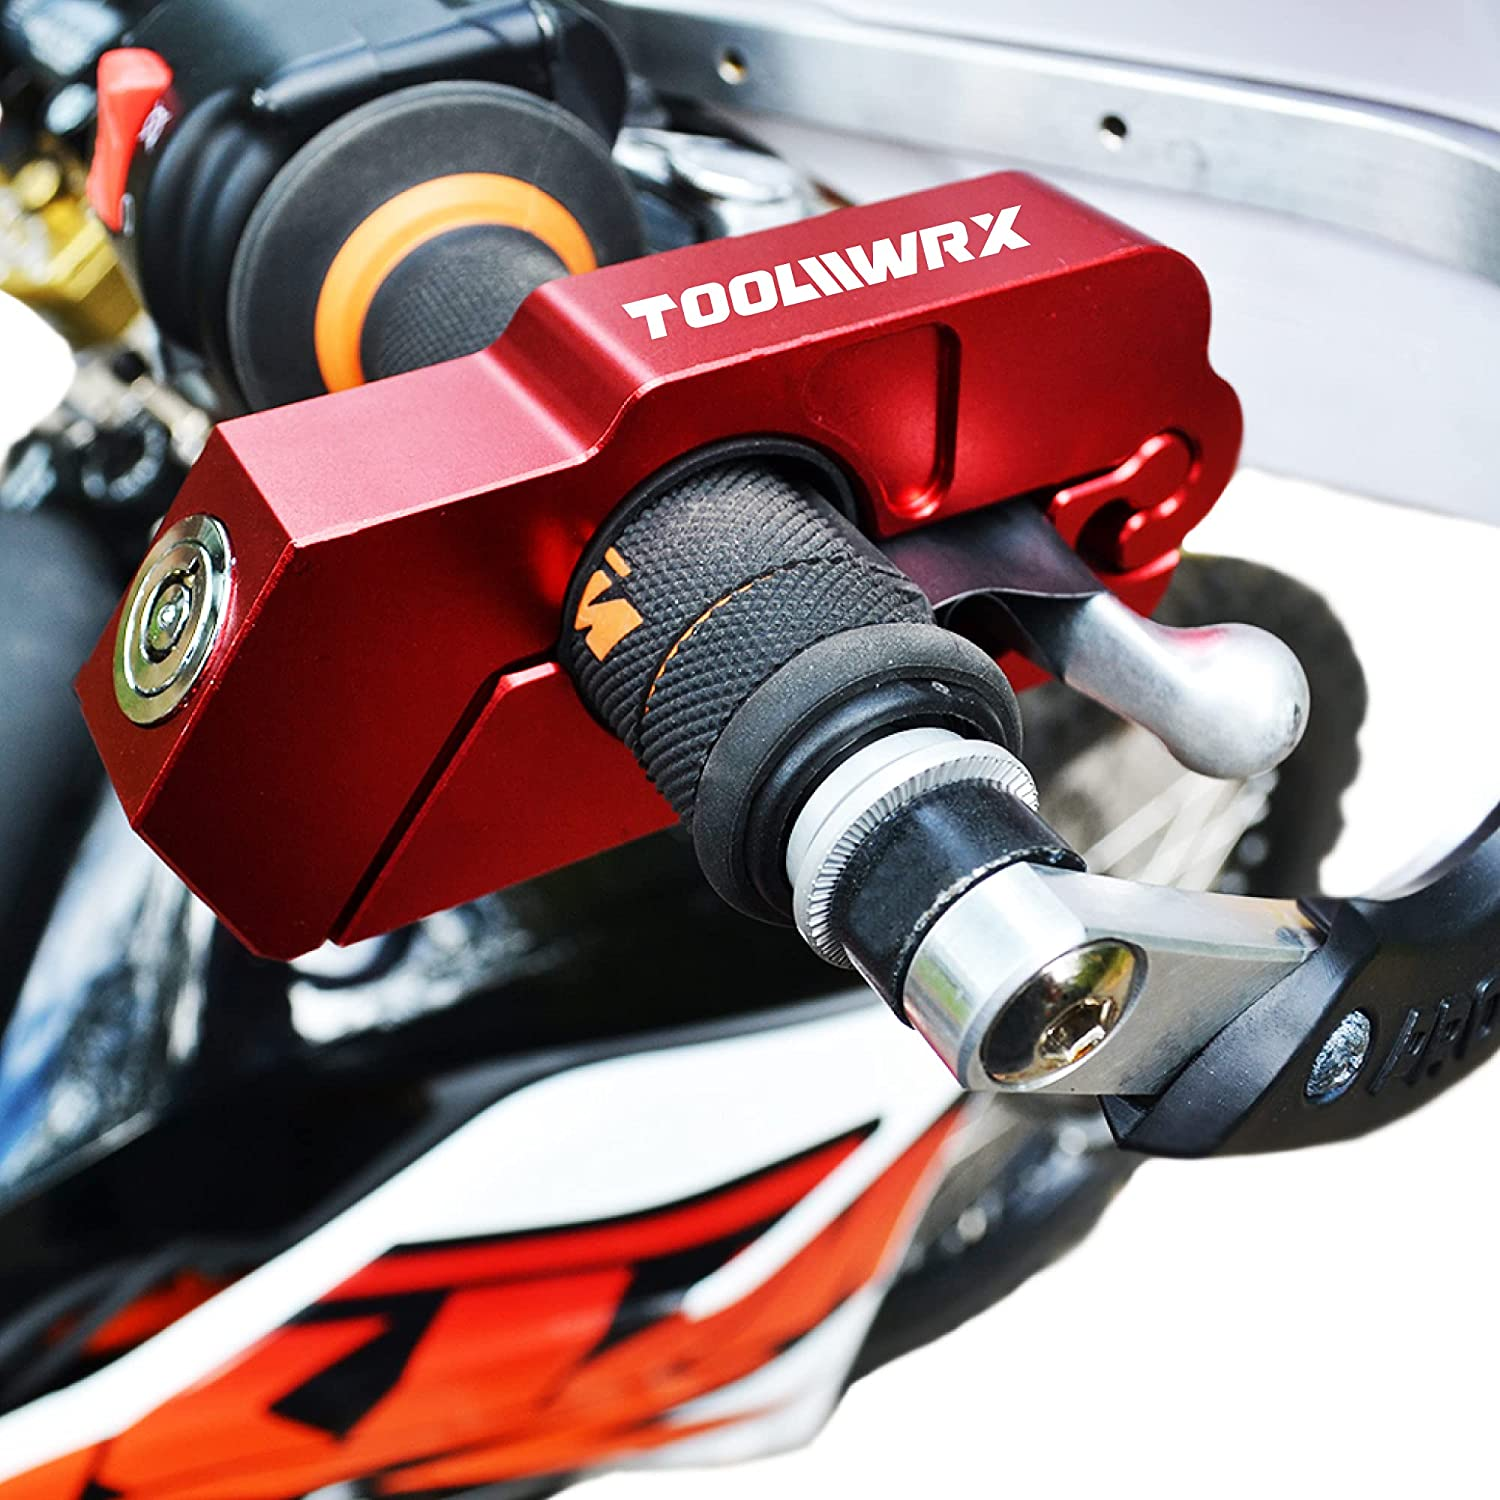 ToolWRX Motorcycle Today's only Lock - Best Quality Theft Heavy [Alternative dealer] for Duty Anti